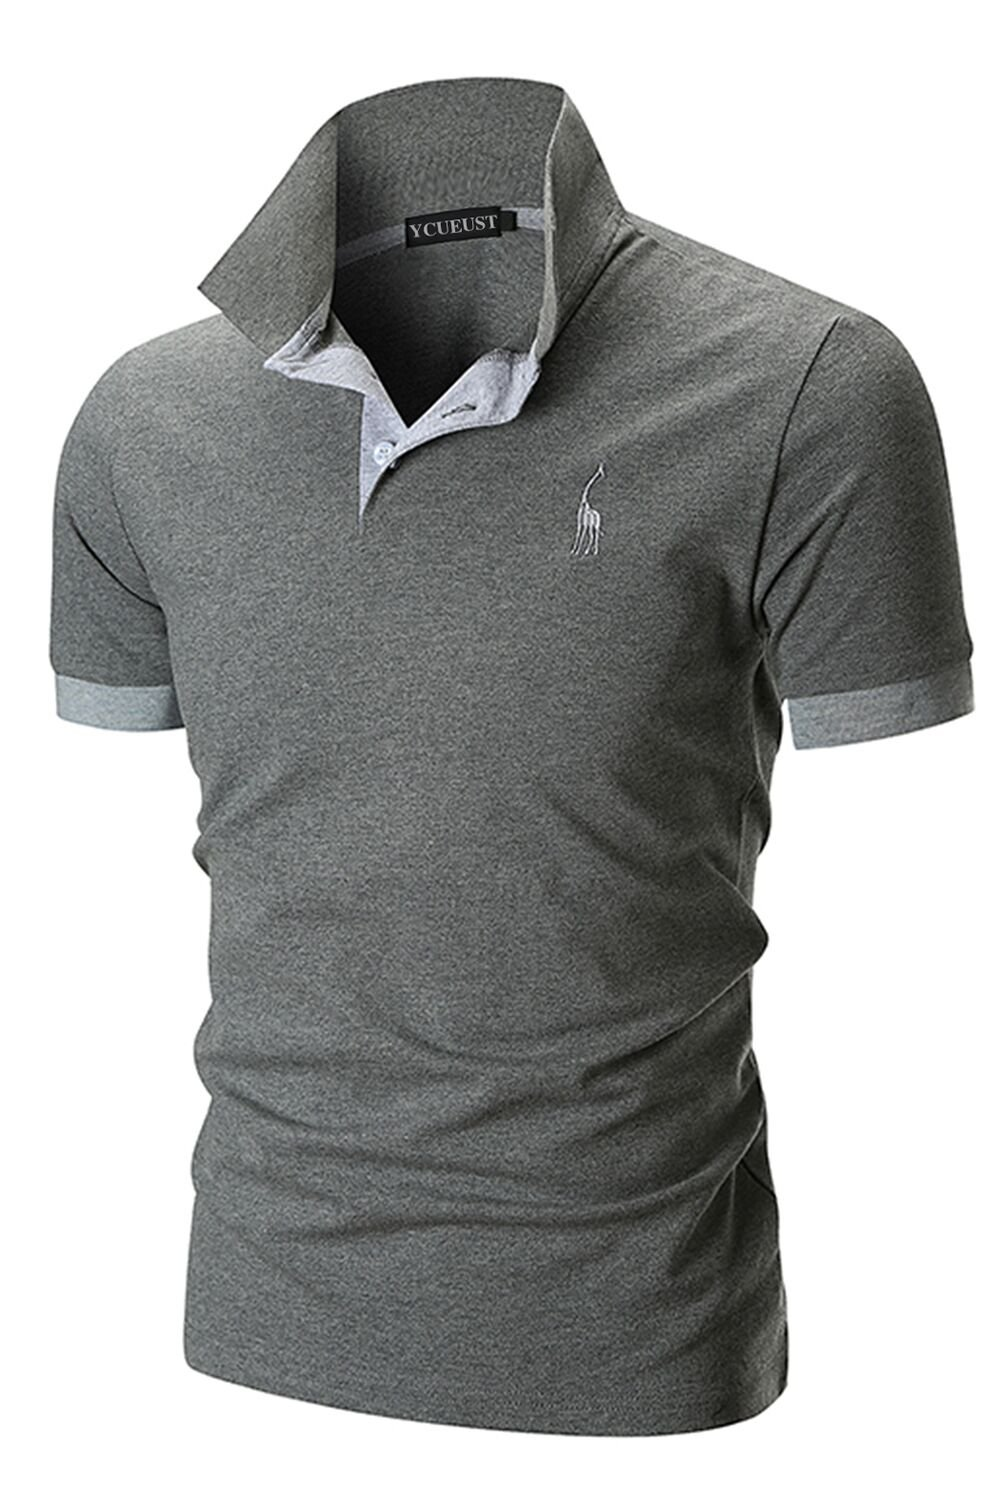 f333860fd1 YCUEUST Hommes Cotton Basic Manche Courte Casual Polo Tennis Golf Poloshirt  product image